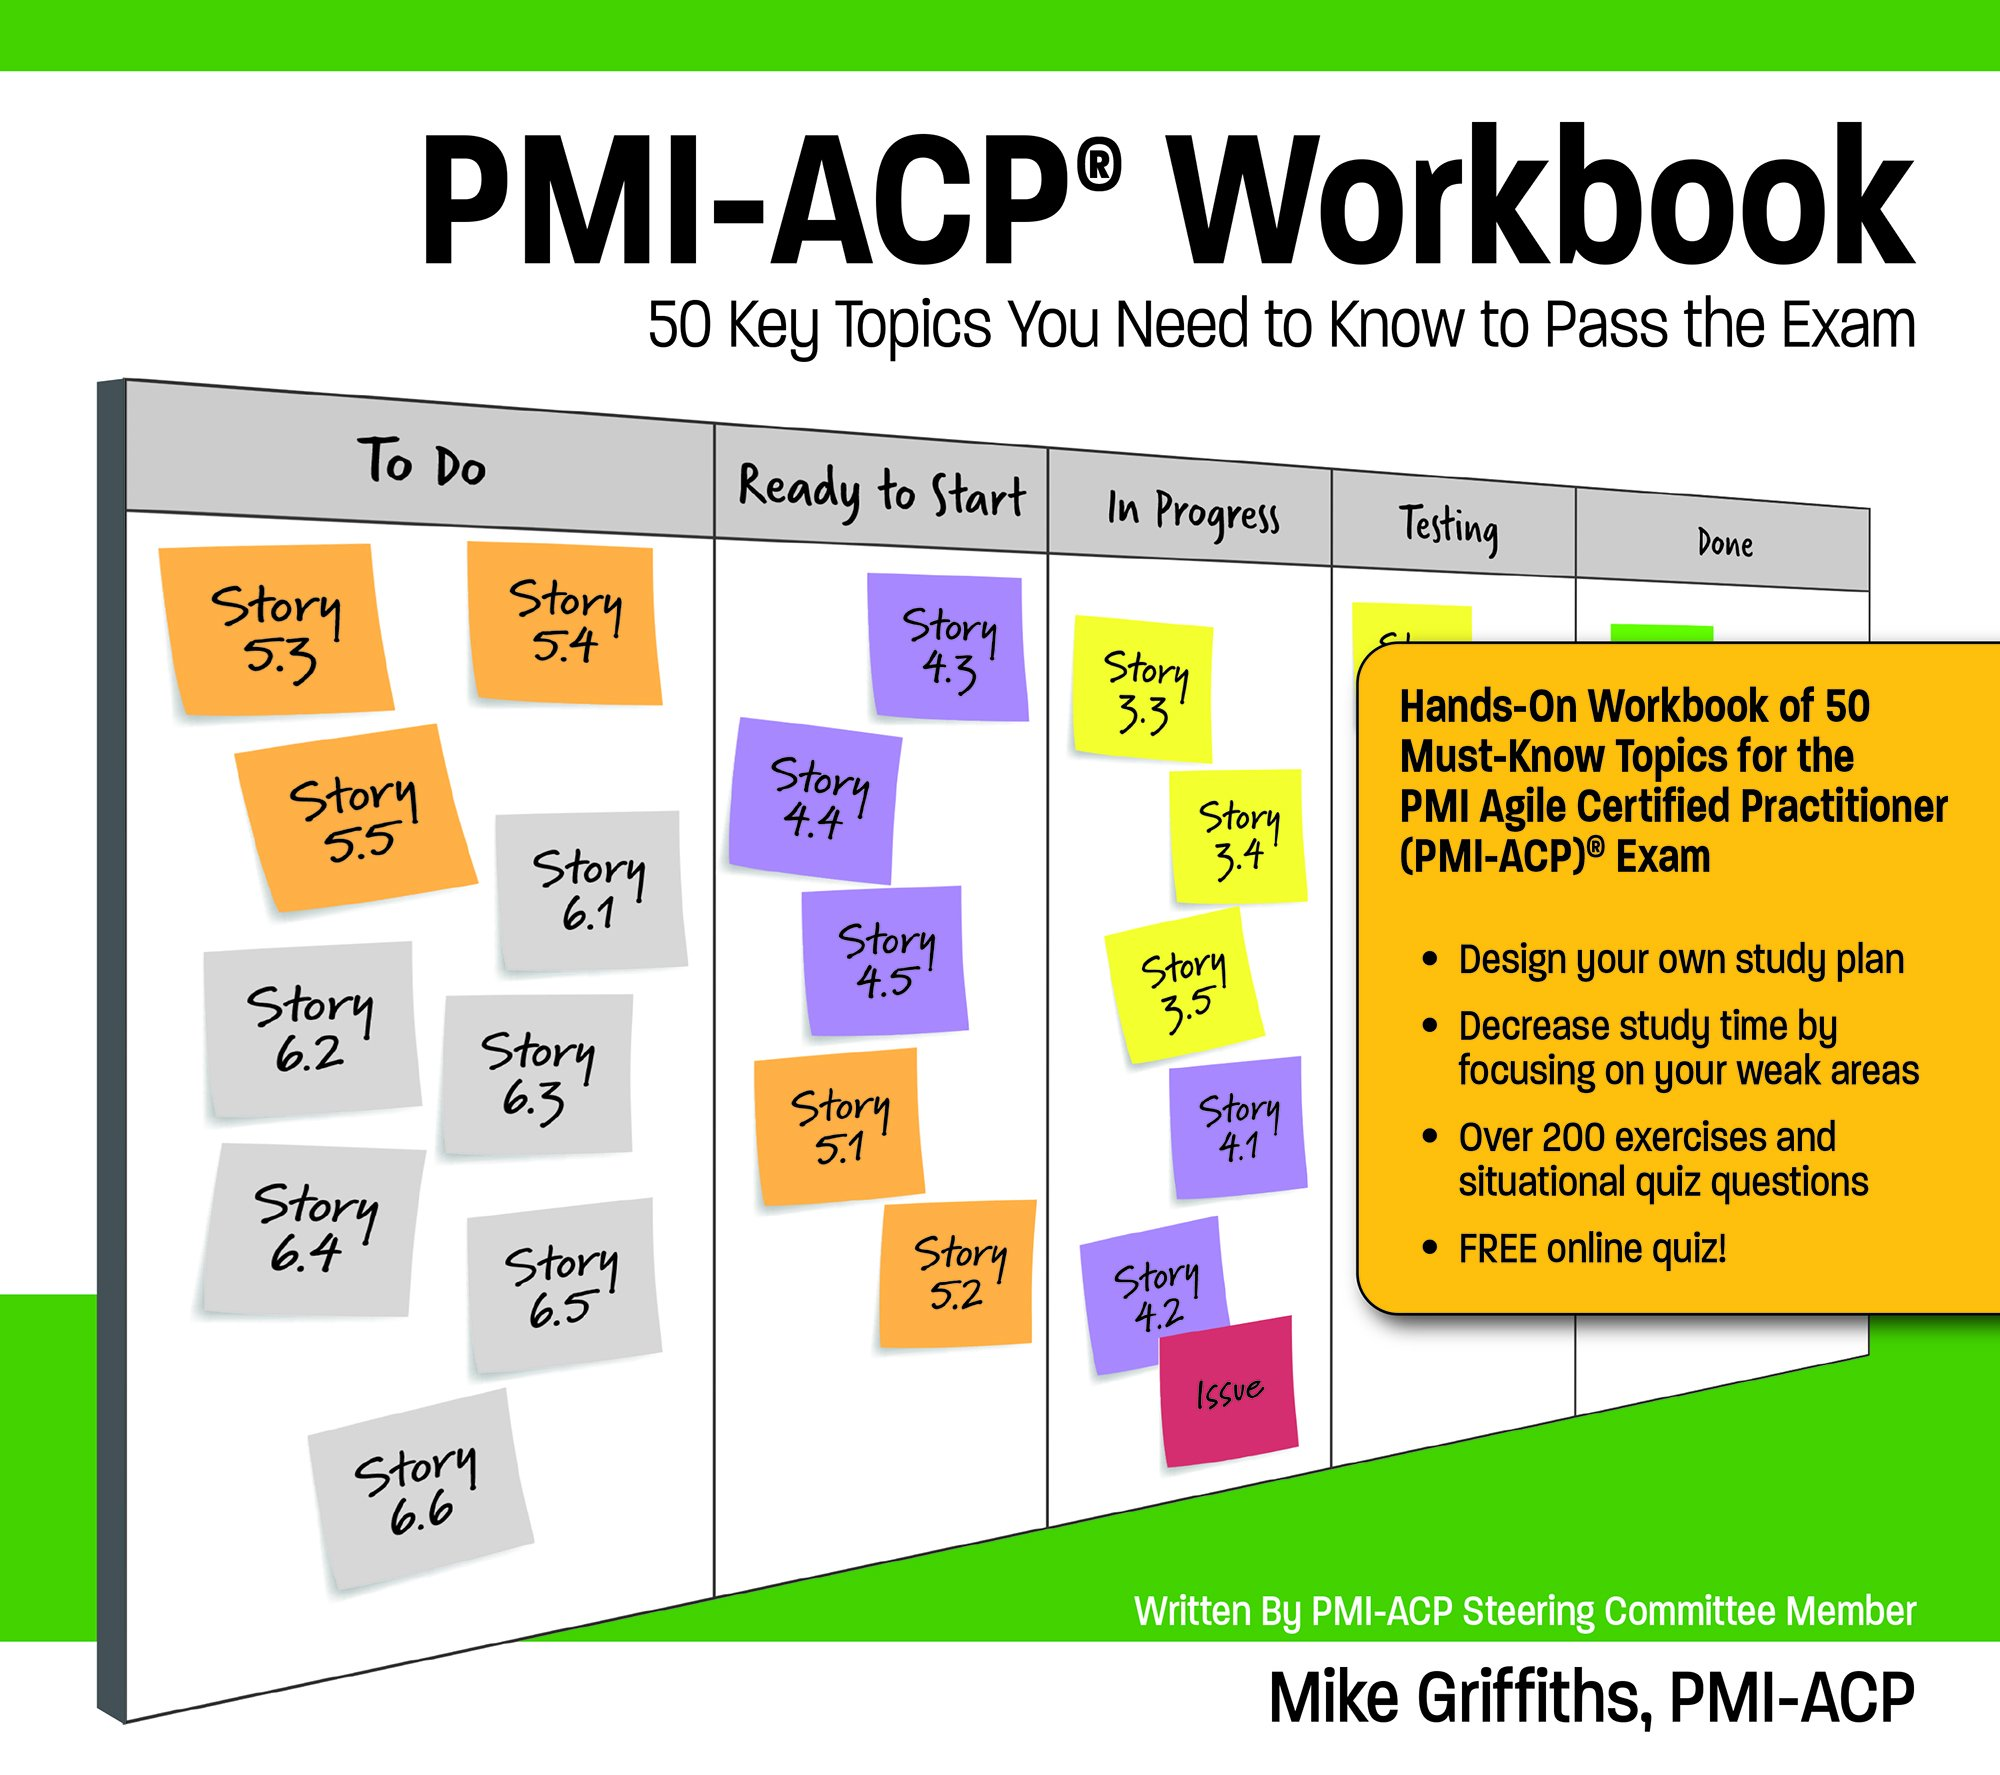 Pmi acp workbook mike griffths rose brandt 9781943704026 pmi acp workbook mike griffths rose brandt 9781943704026 amazon books 1betcityfo Images